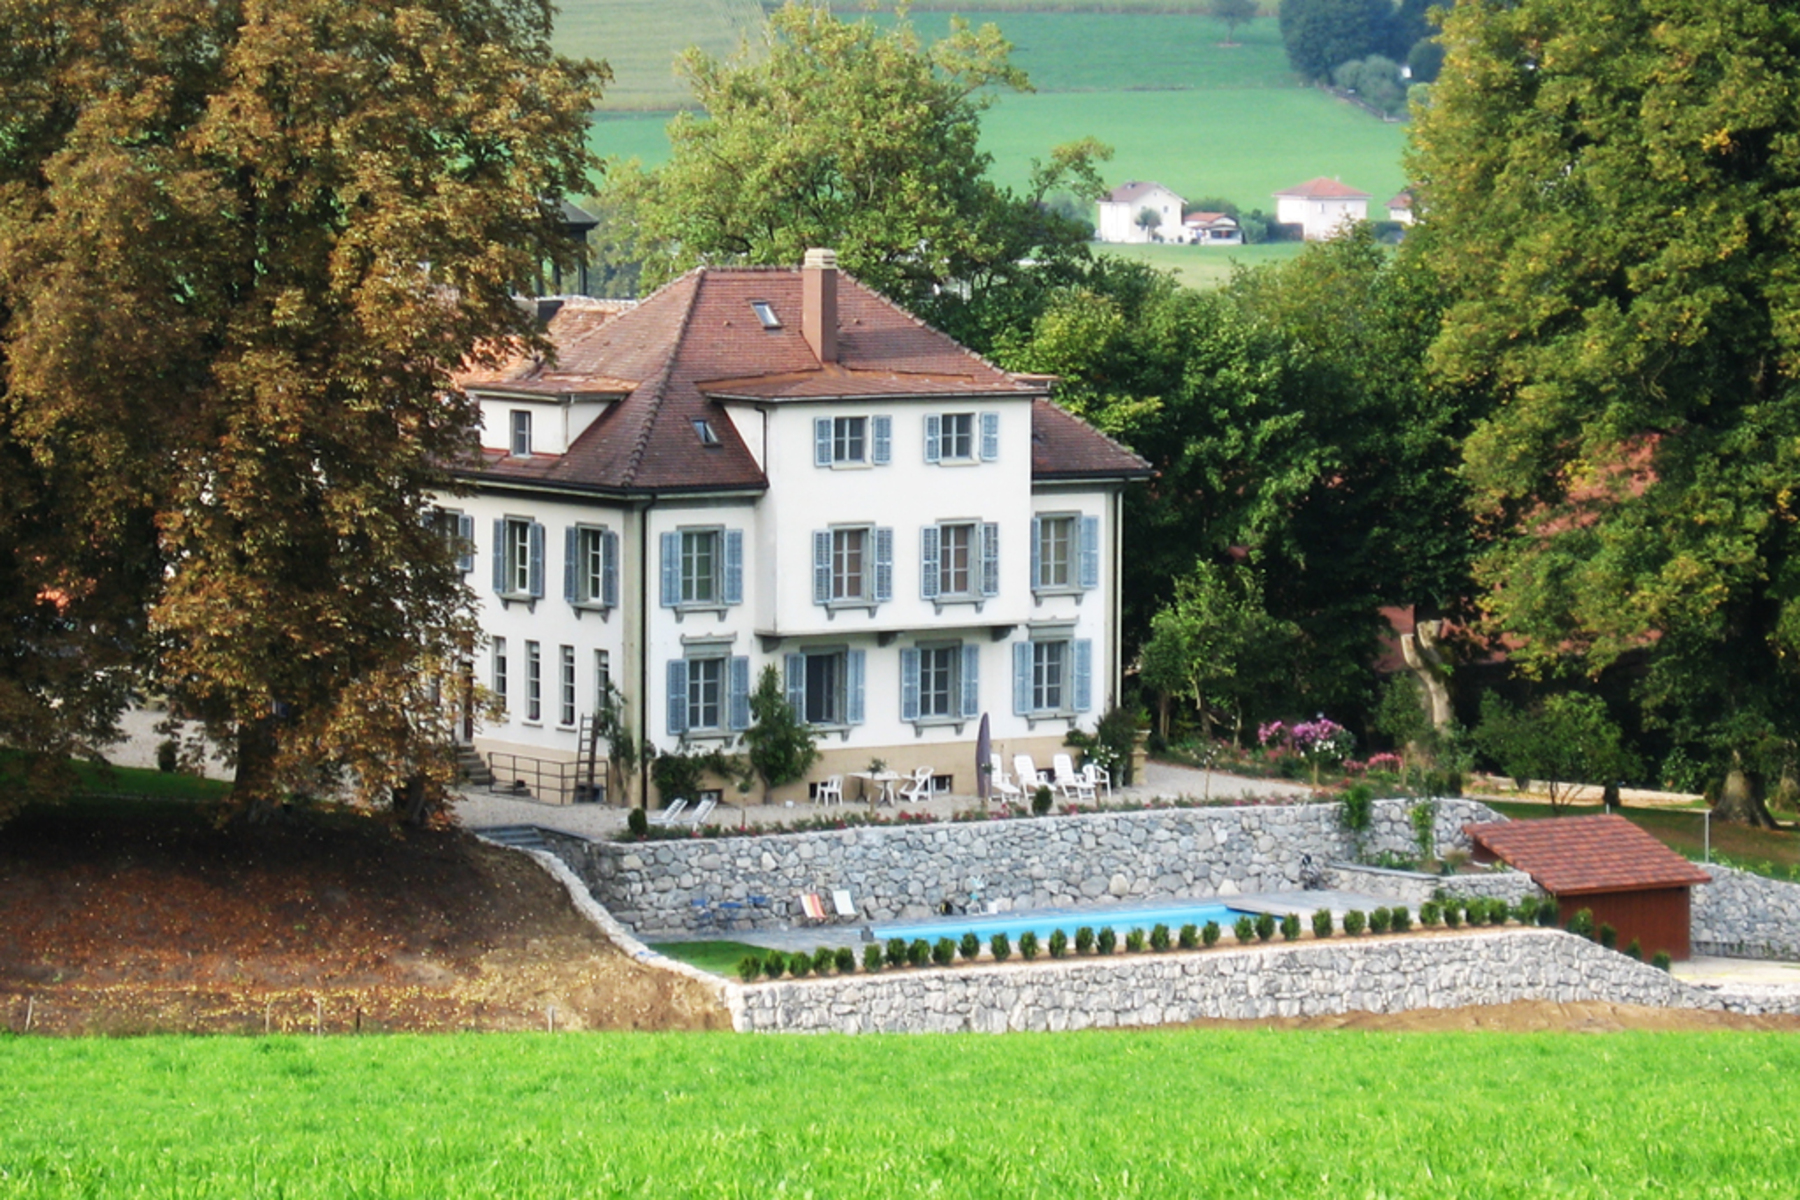 Casa para uma família para Venda às Magnificent mansion in peaceful surroundings Hauterive Other Switzerland, Outras Áreas Na Suíça, 1725 Suíça